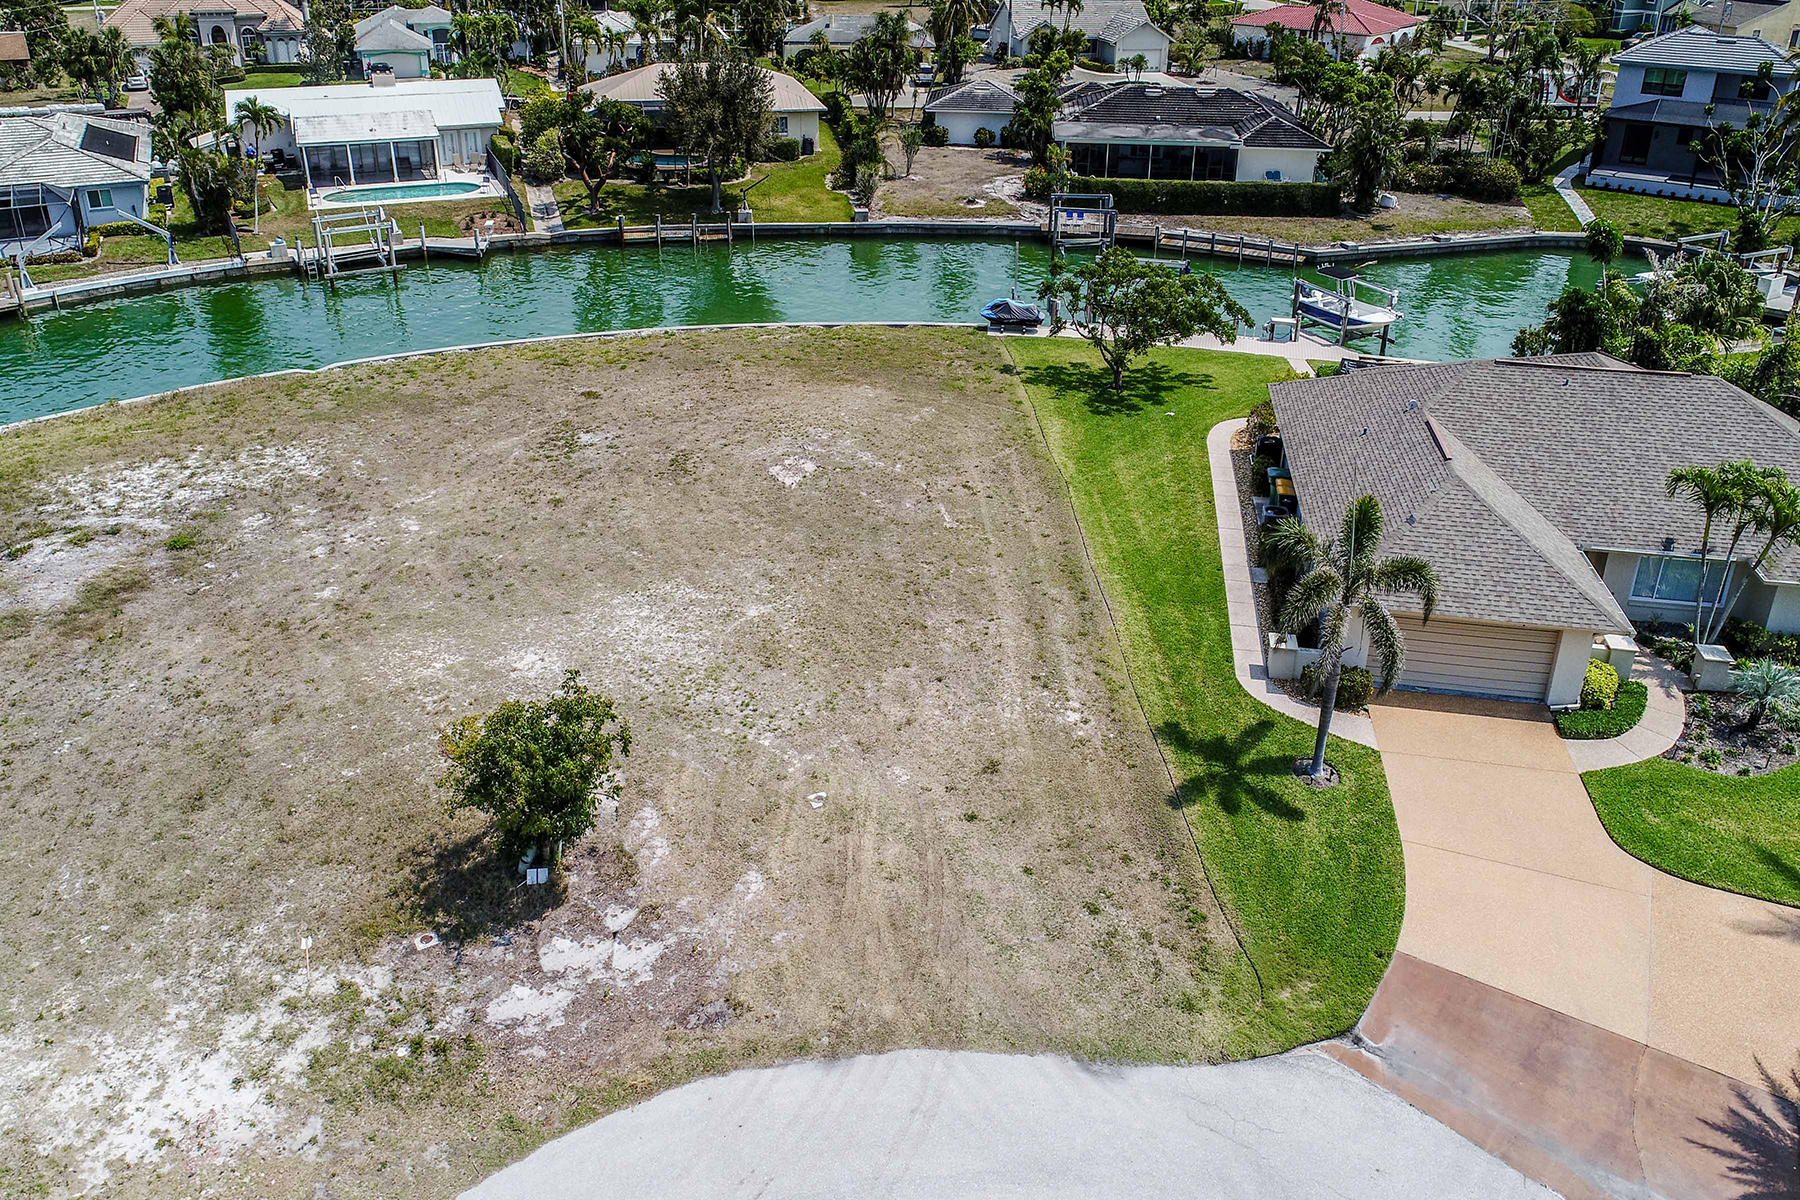 Land for Sale at MARCO ISLAND 1083 Old Marco Ln, Marco Island, Florida 34145 United States